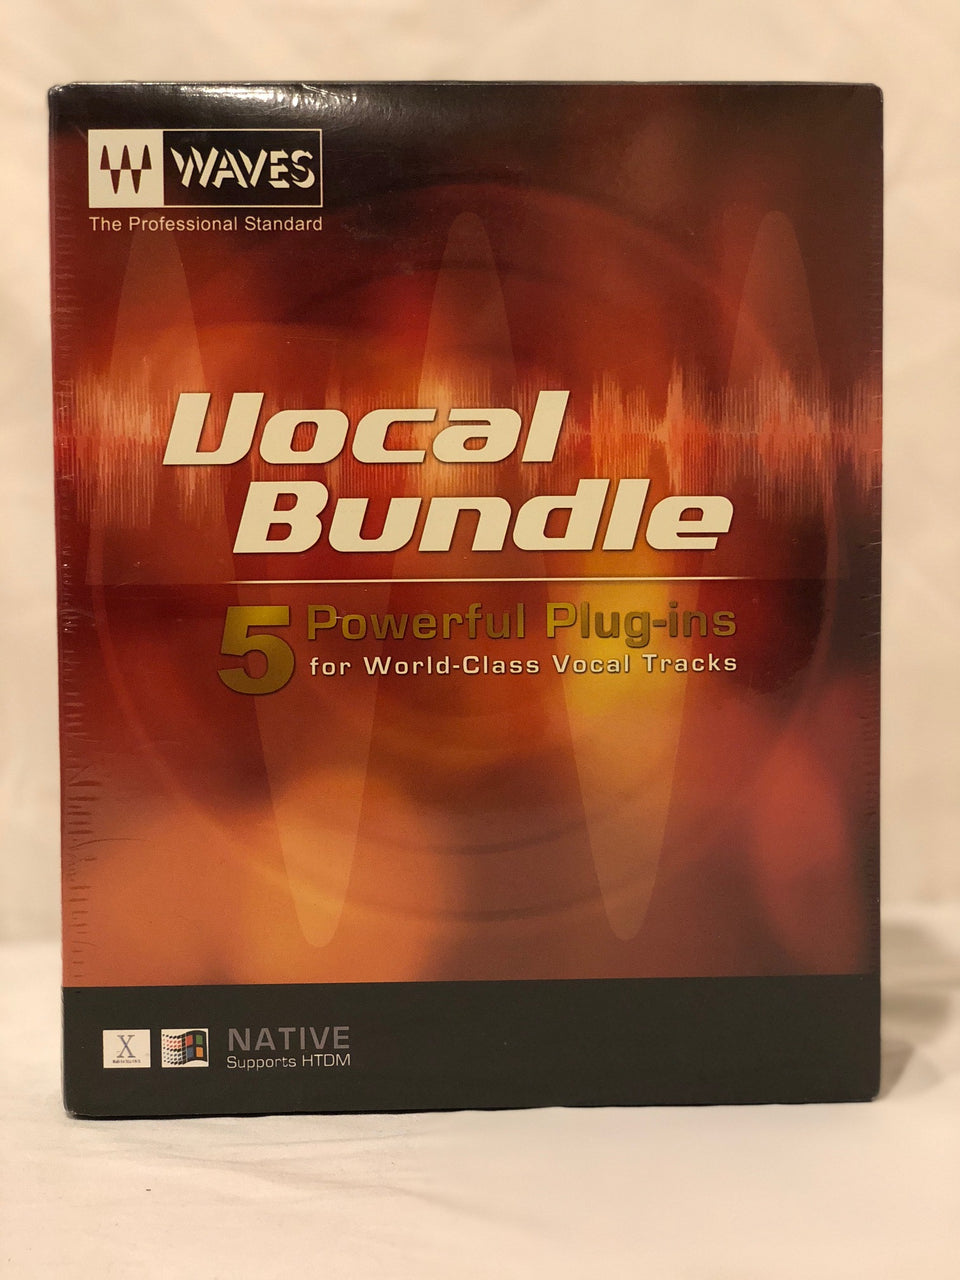 WAVES Vocal Bundle Audio Software